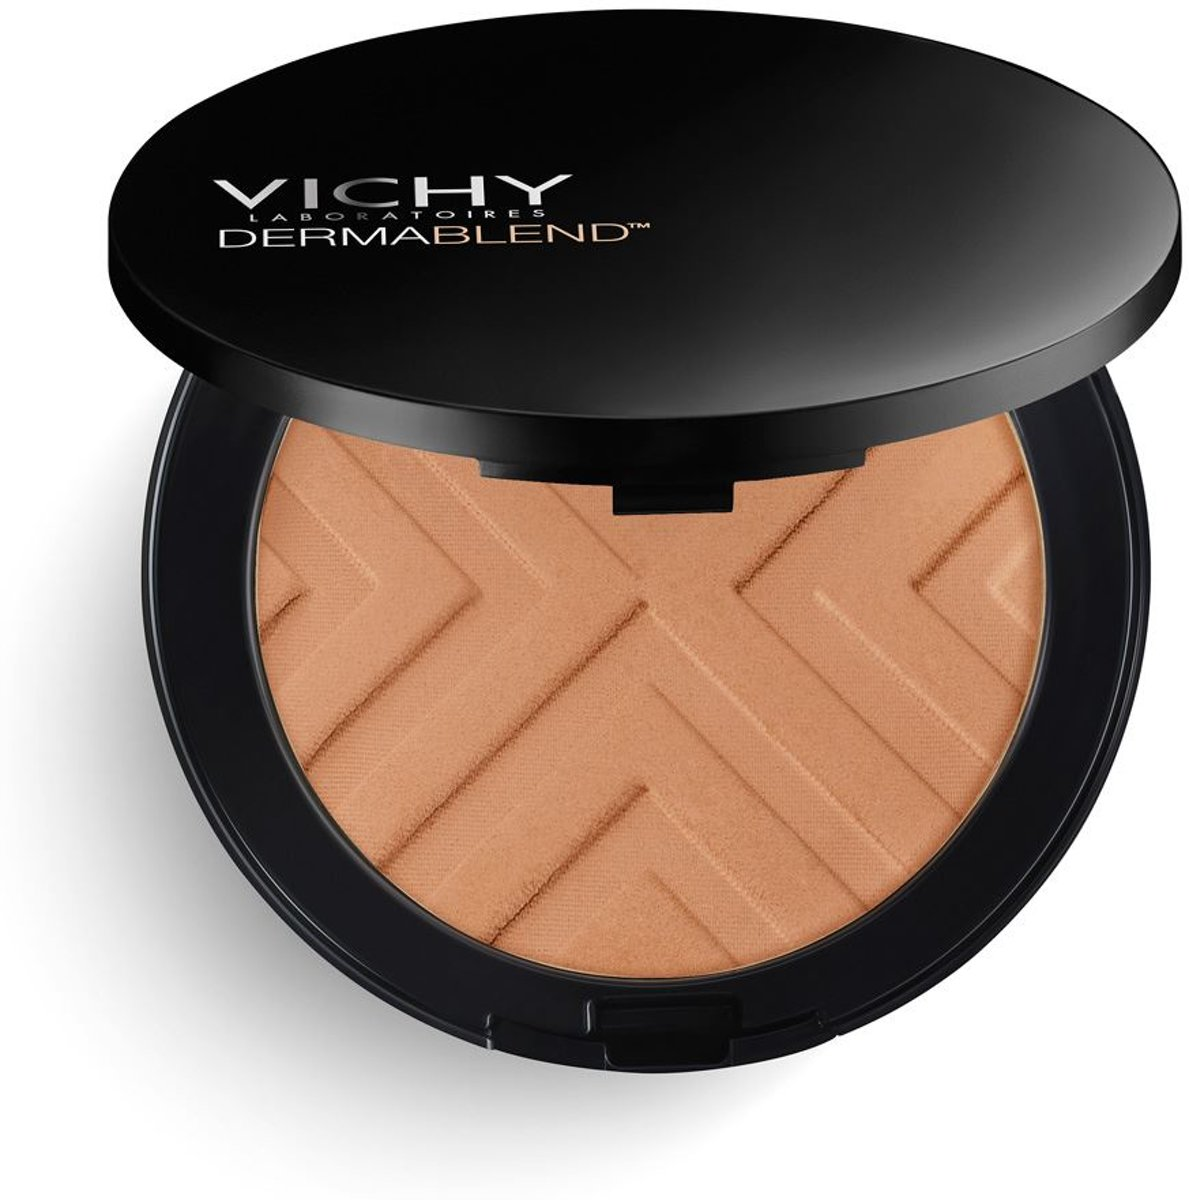 Vichy - Dermablend Covermatte Bronze nr. 55 Spf 25